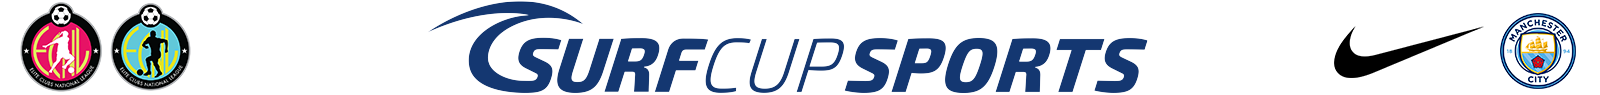 Surf Cup Sports Logo